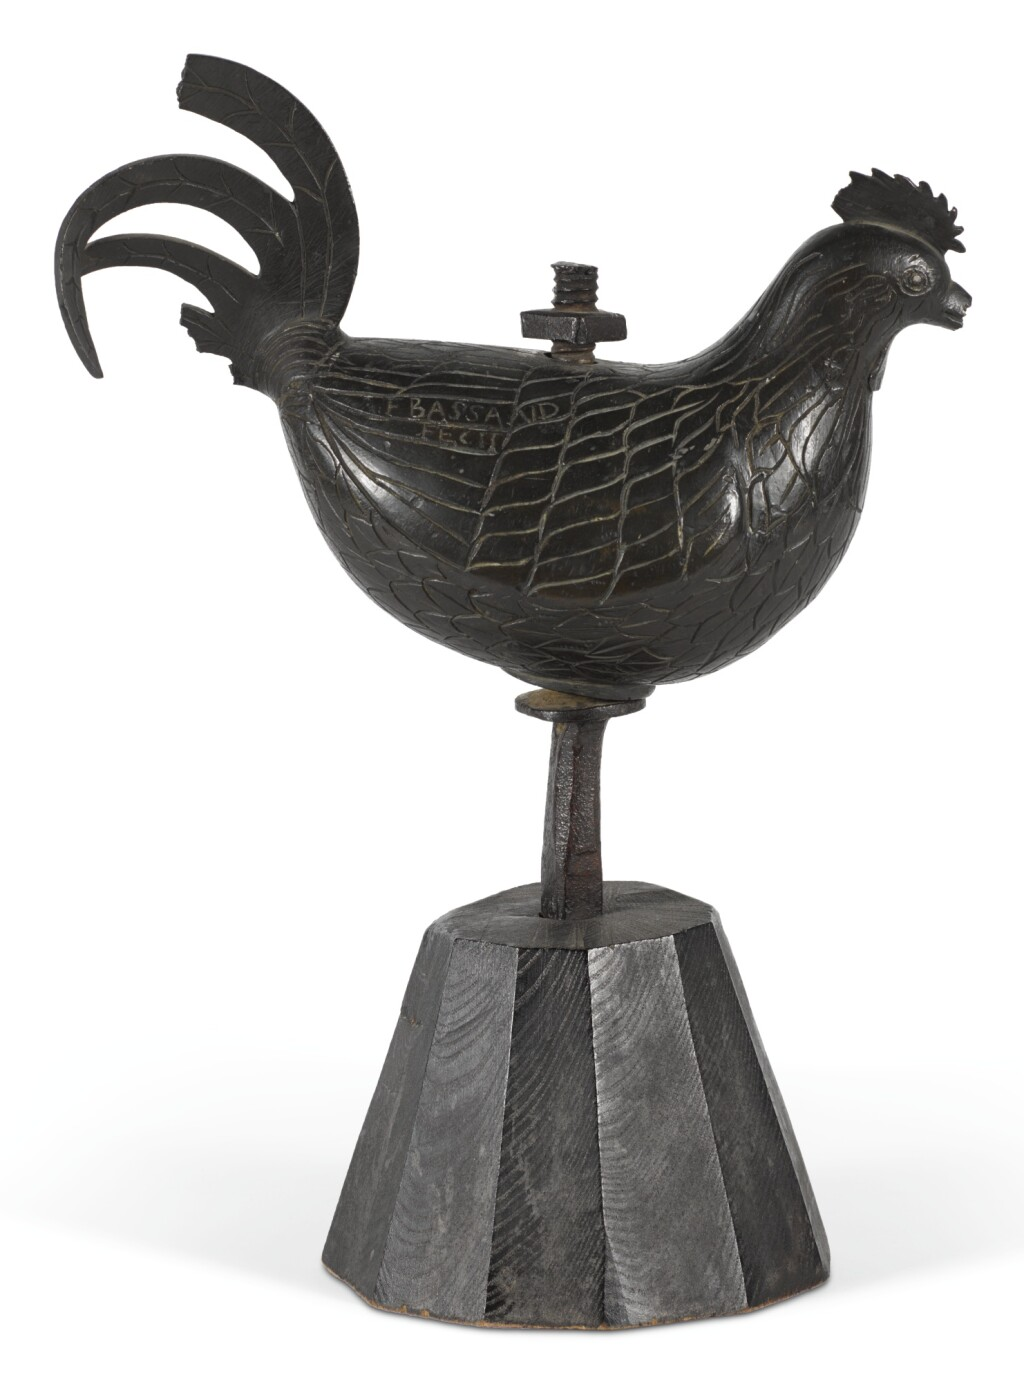 FRENCH, 1646 | Cockerel